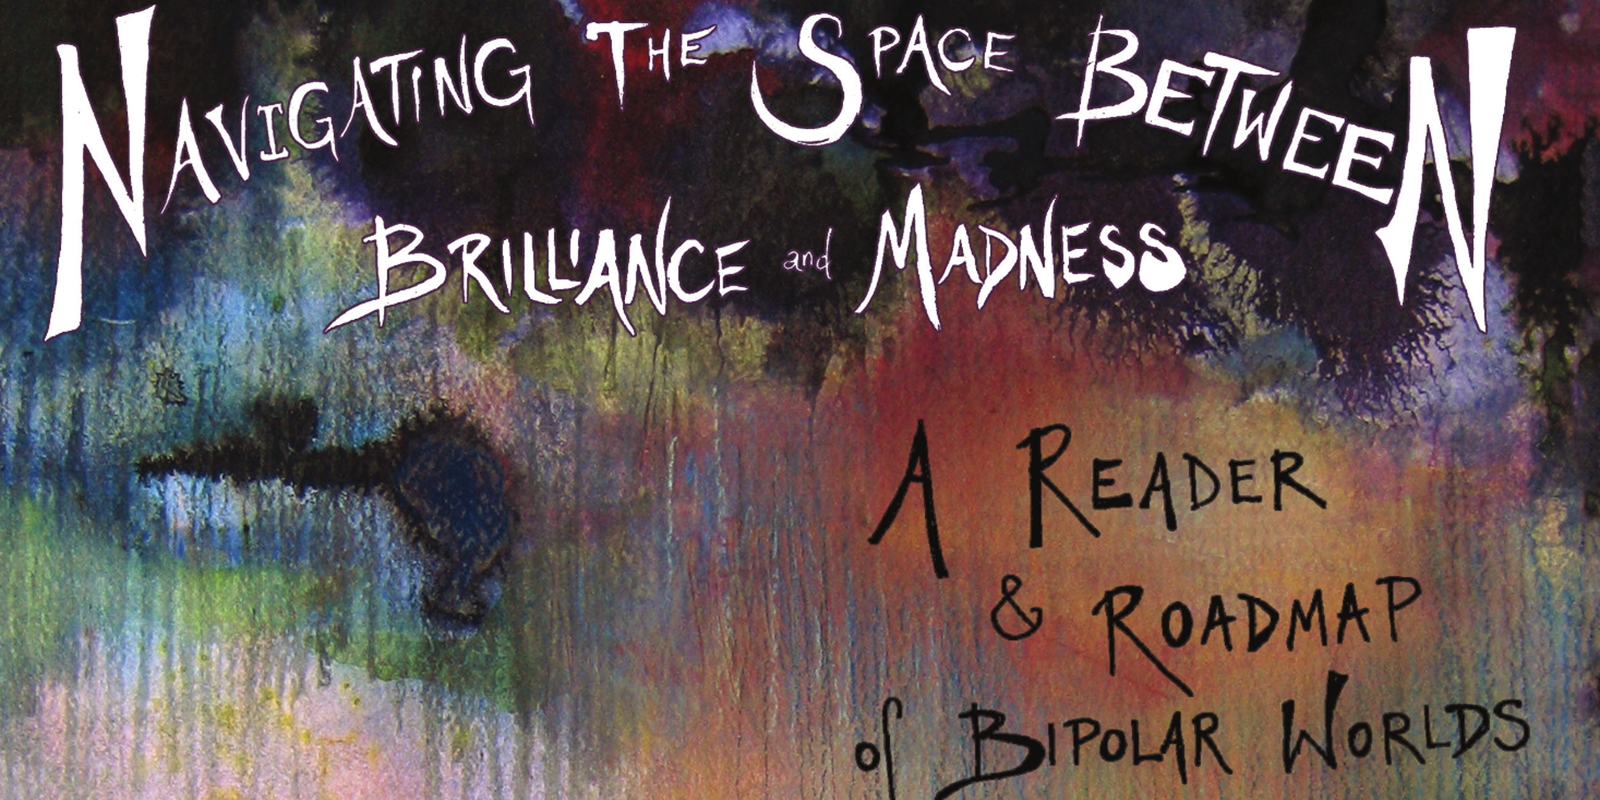 Navigating The Space Between Brilliance And Madness: A Reader & Roadmap Of Bipolar Worlds